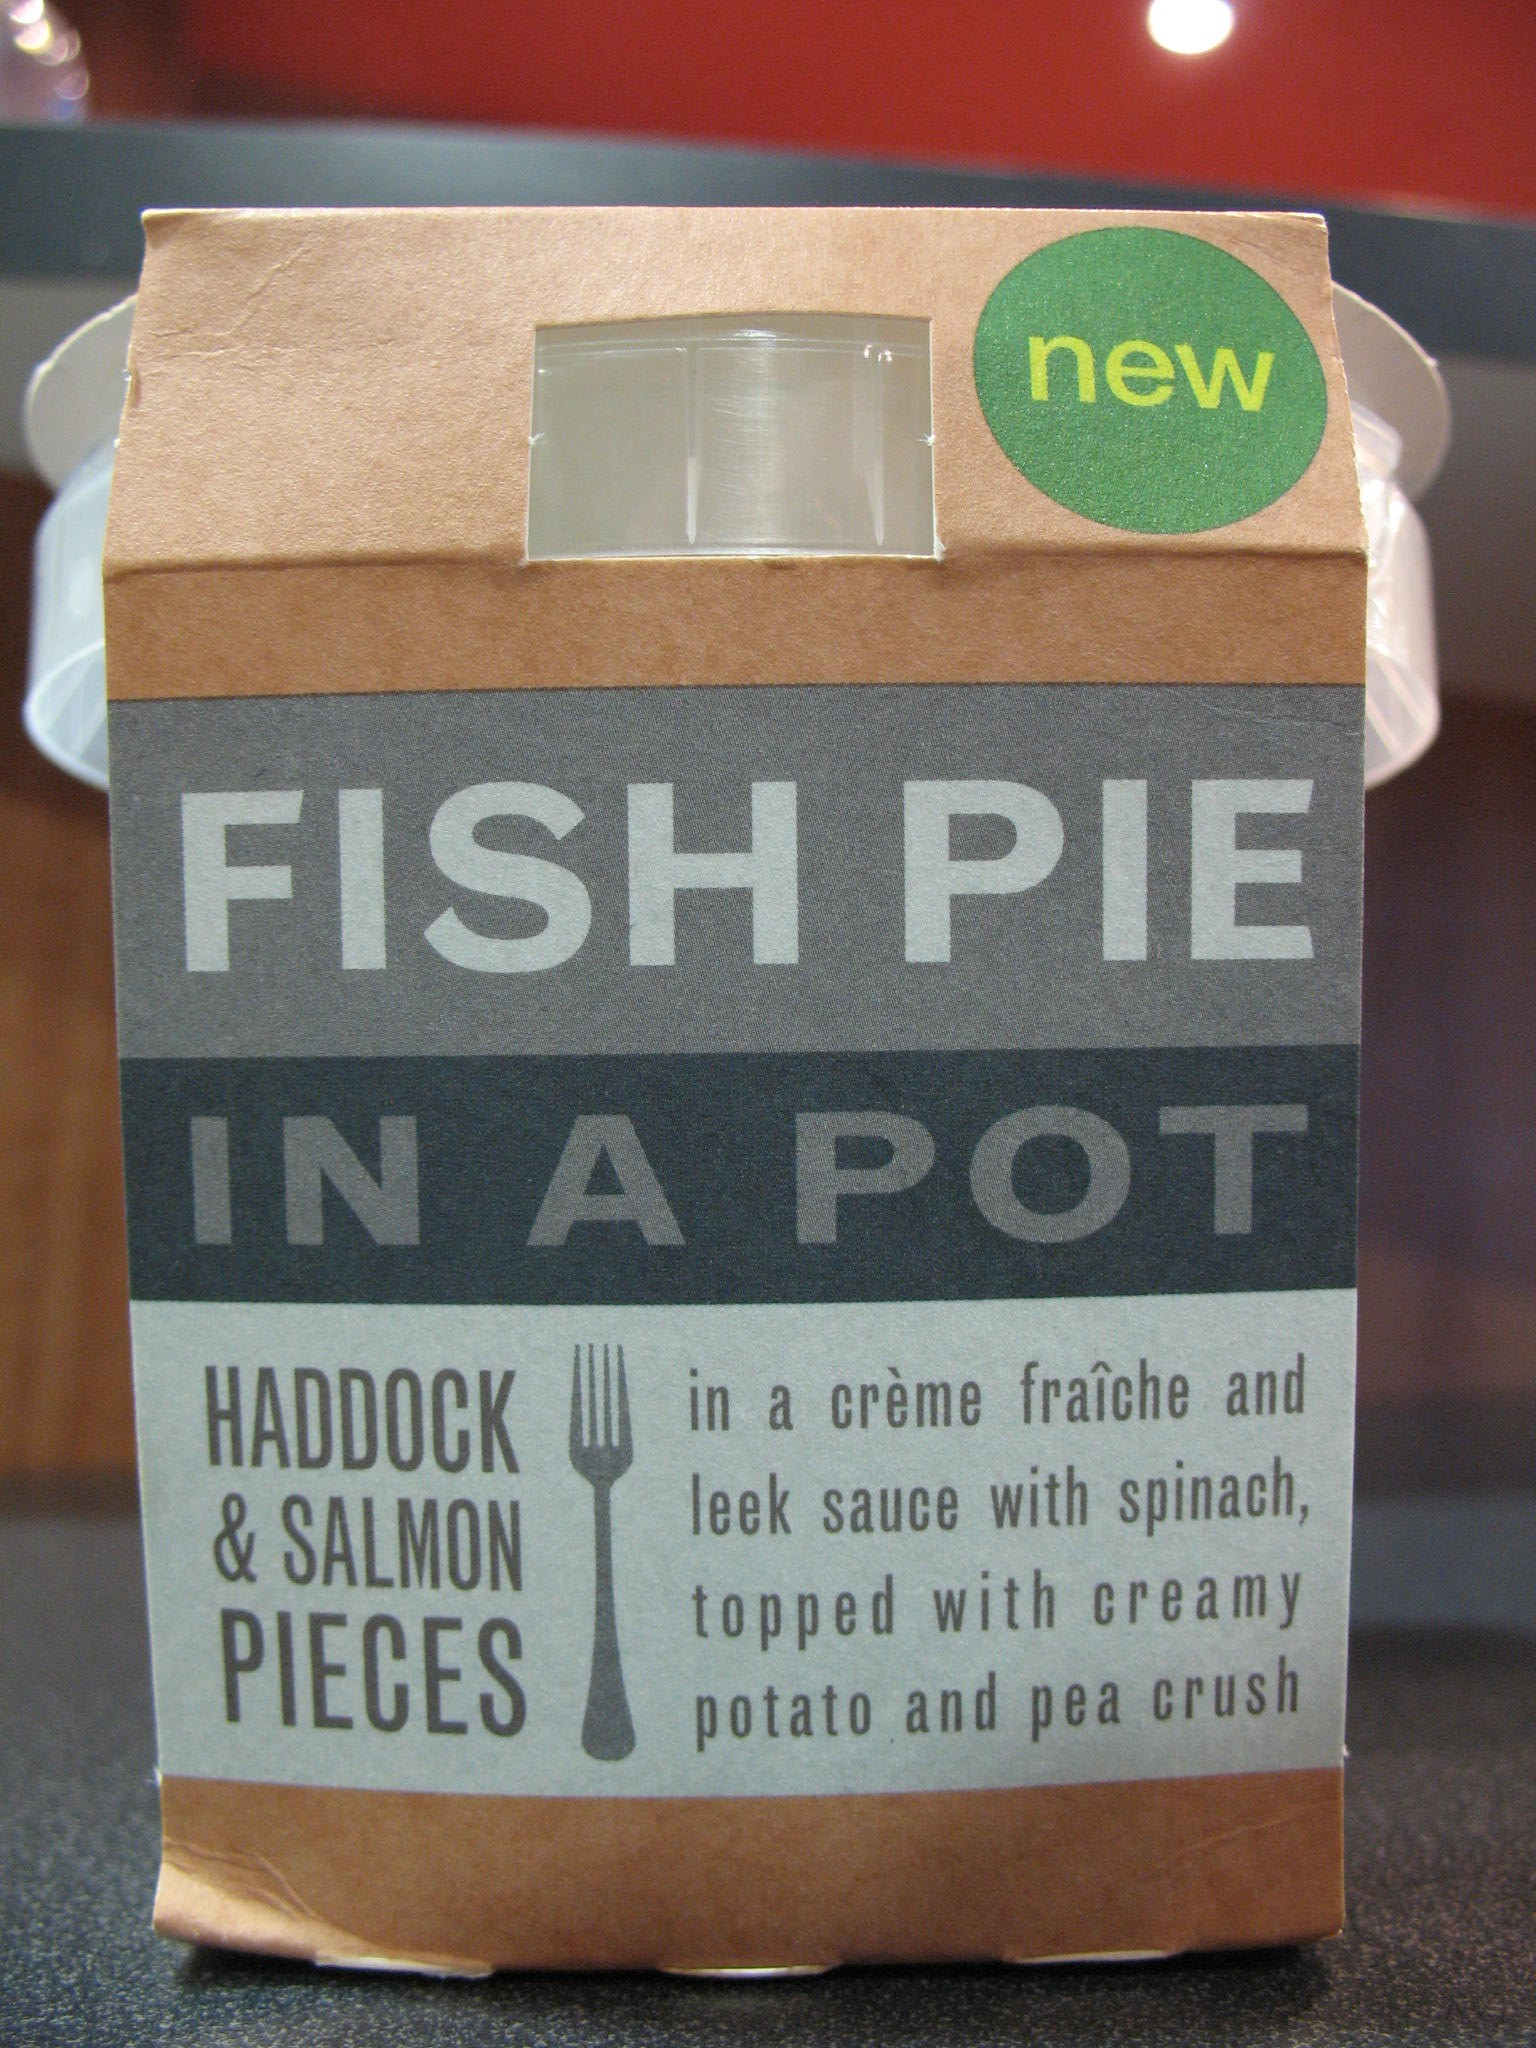 ms-fish-pie-in-a-pot-1